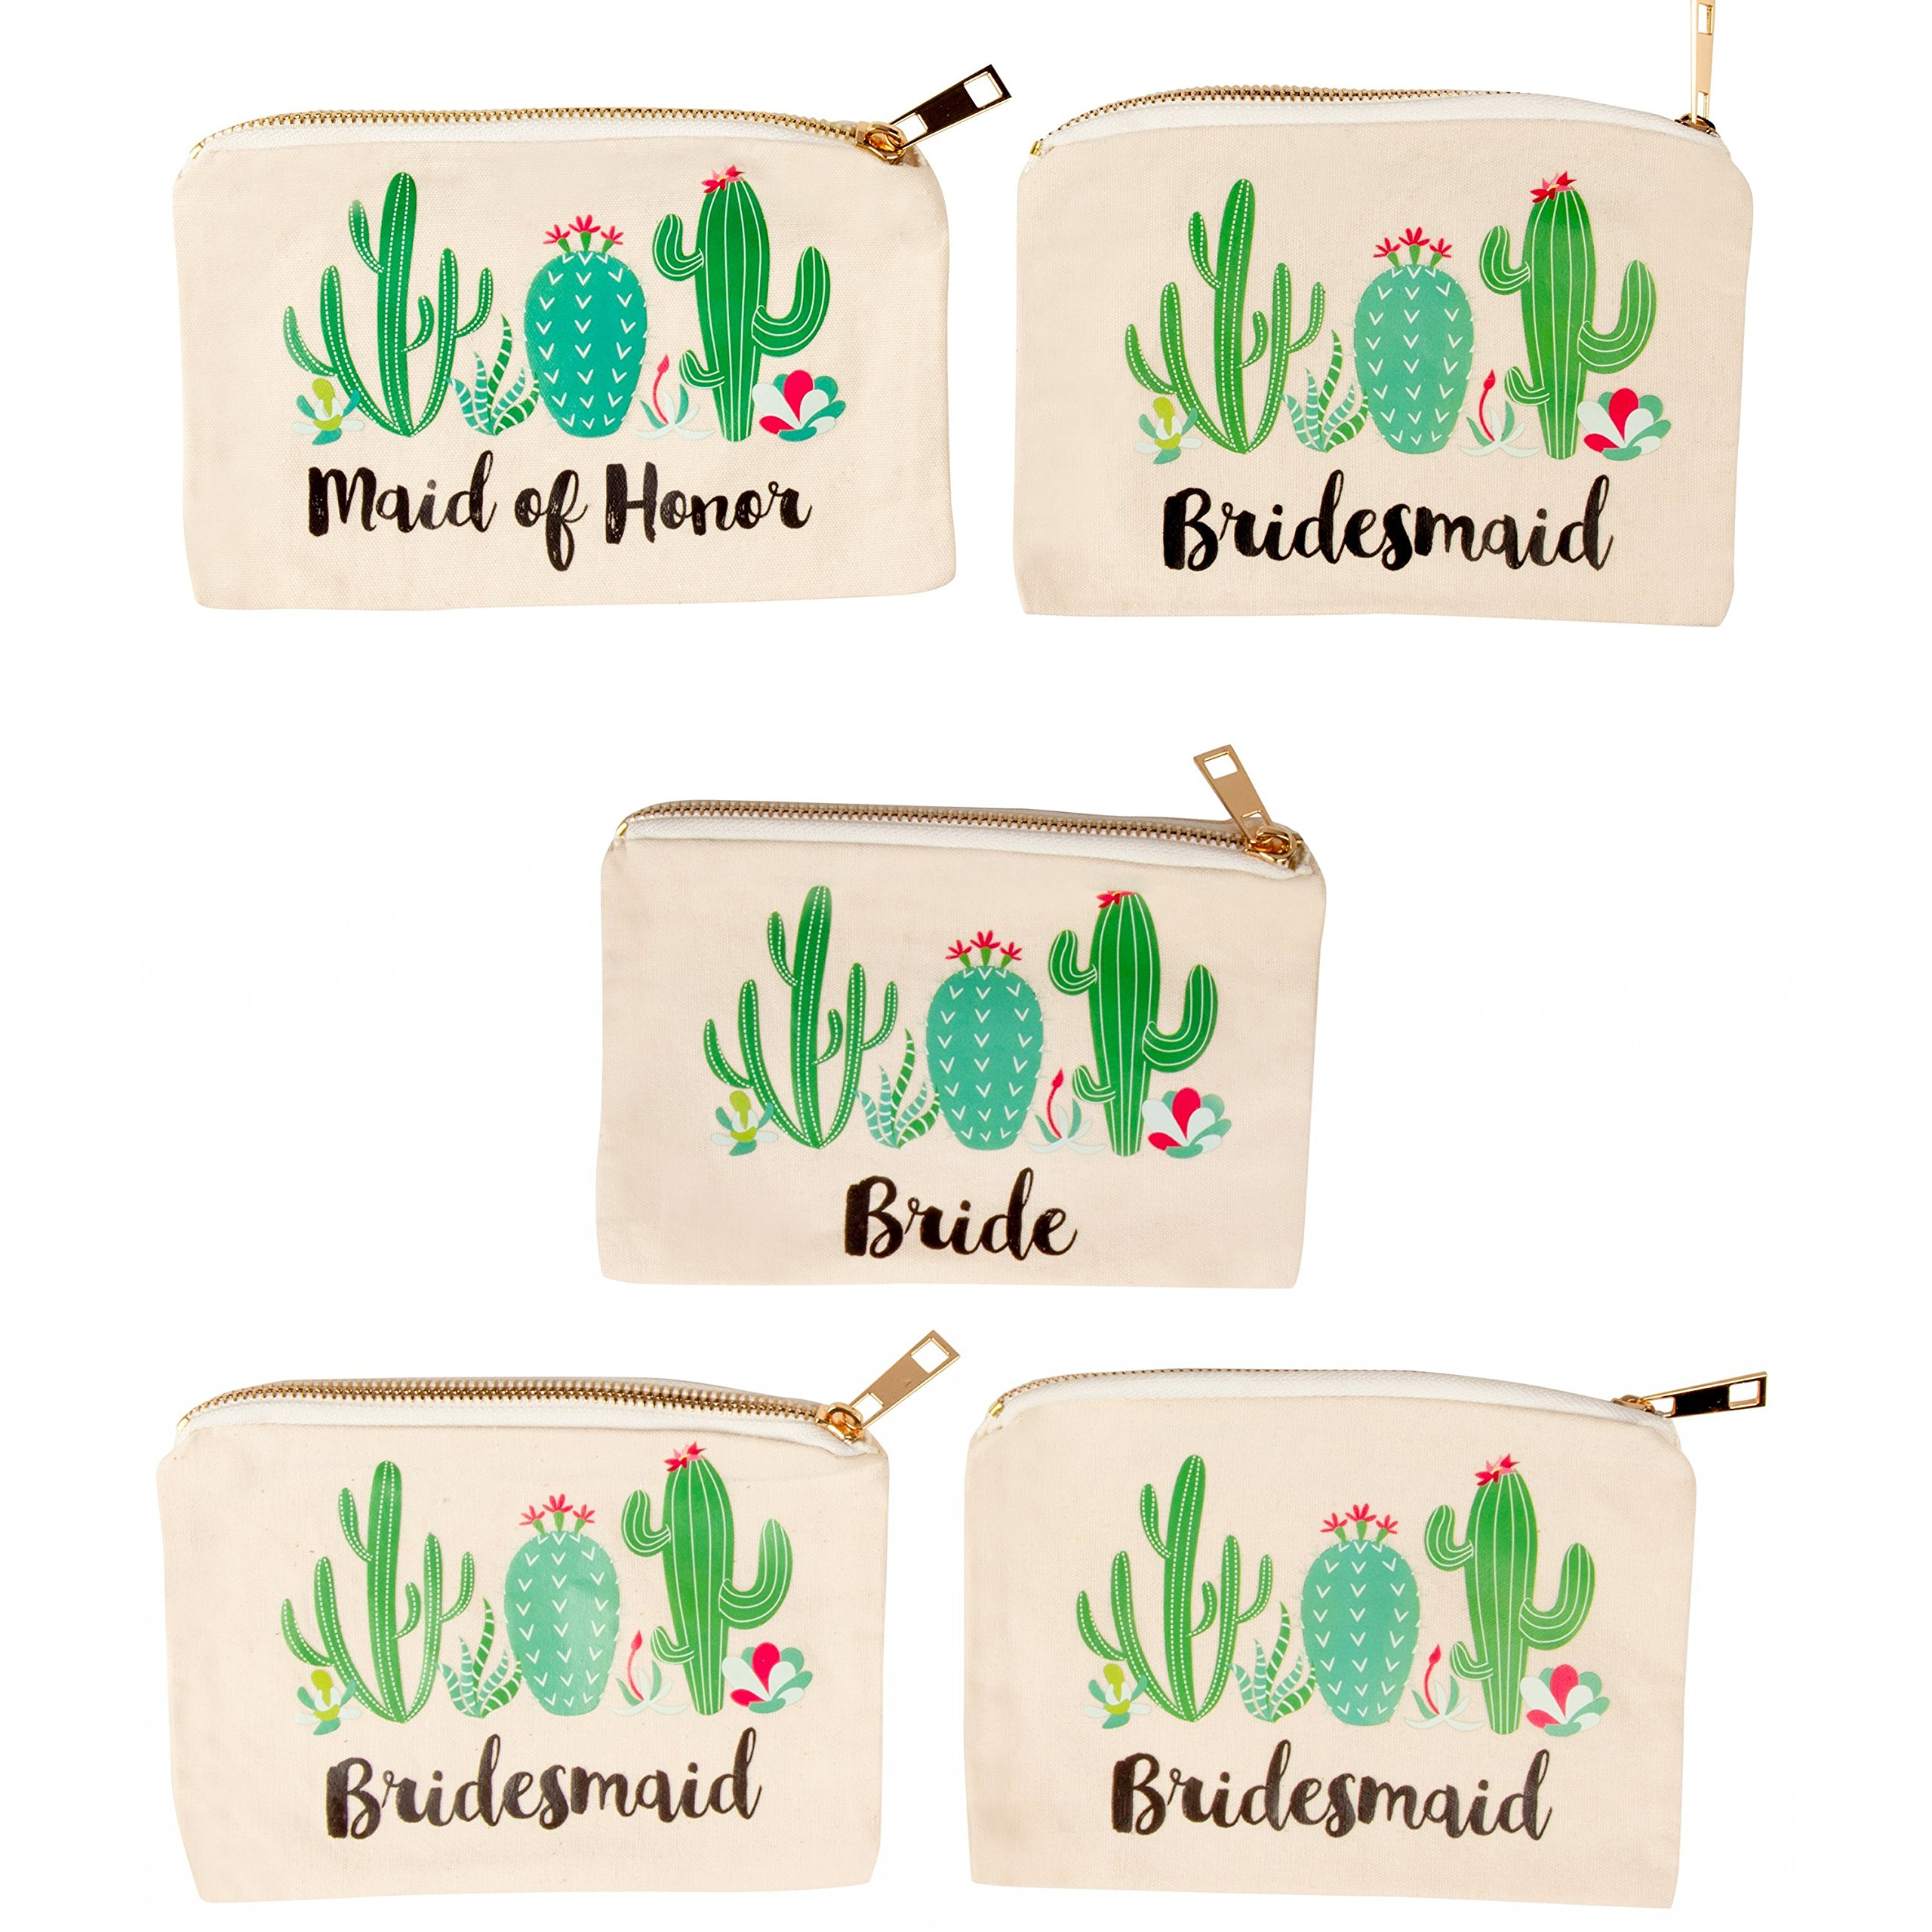 Bridal Shower Makeup Bag - 5-Pack Canvas Cosmetic Pouches for Wedding Favors, Bachelorette Party Gifts, Bride Tribe Accessories, Cactus Design, 7.2 x 4.7 Inches